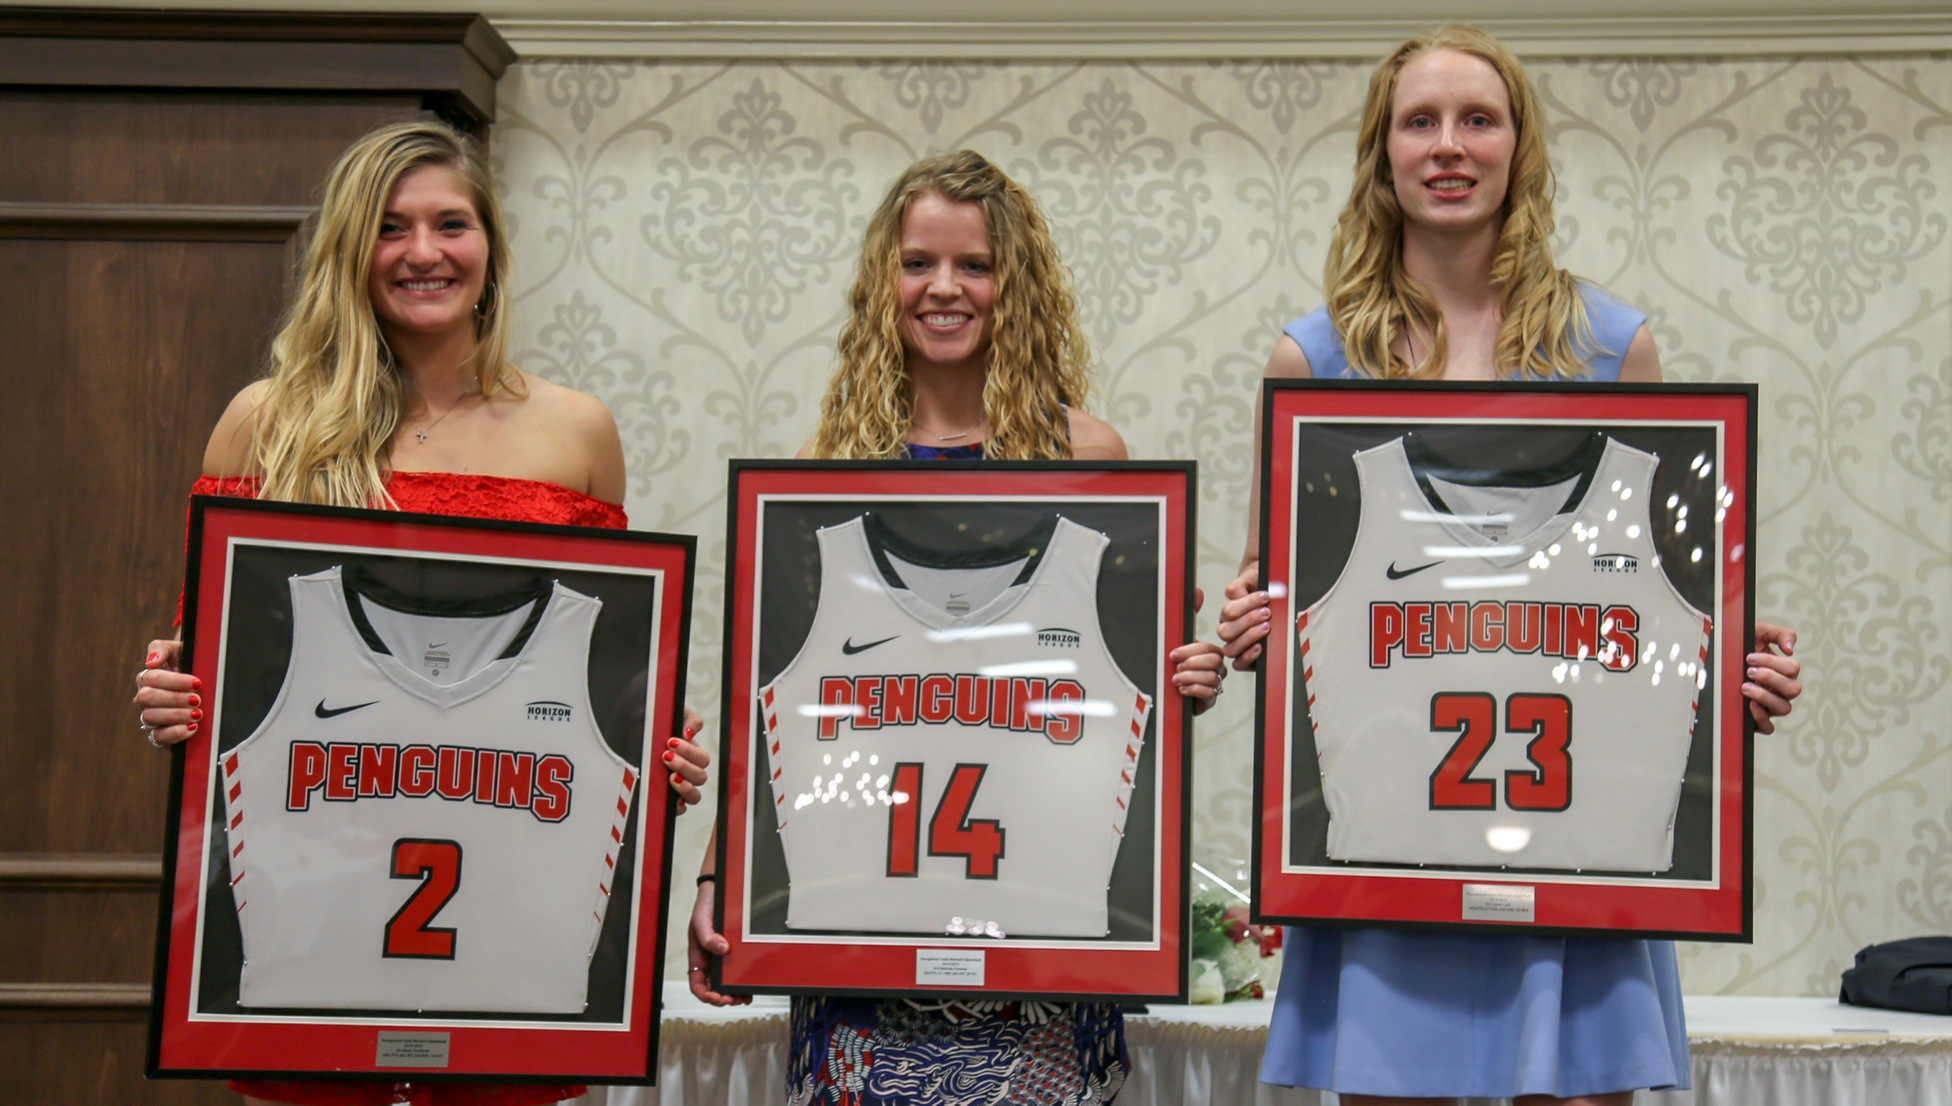 Seniors Alison Smolinski, Melinda Trimmer and Sarah Cash received framed jerseys at the 2018-19 Youngstown State Women's Women's Basketball Postseason Banquet.